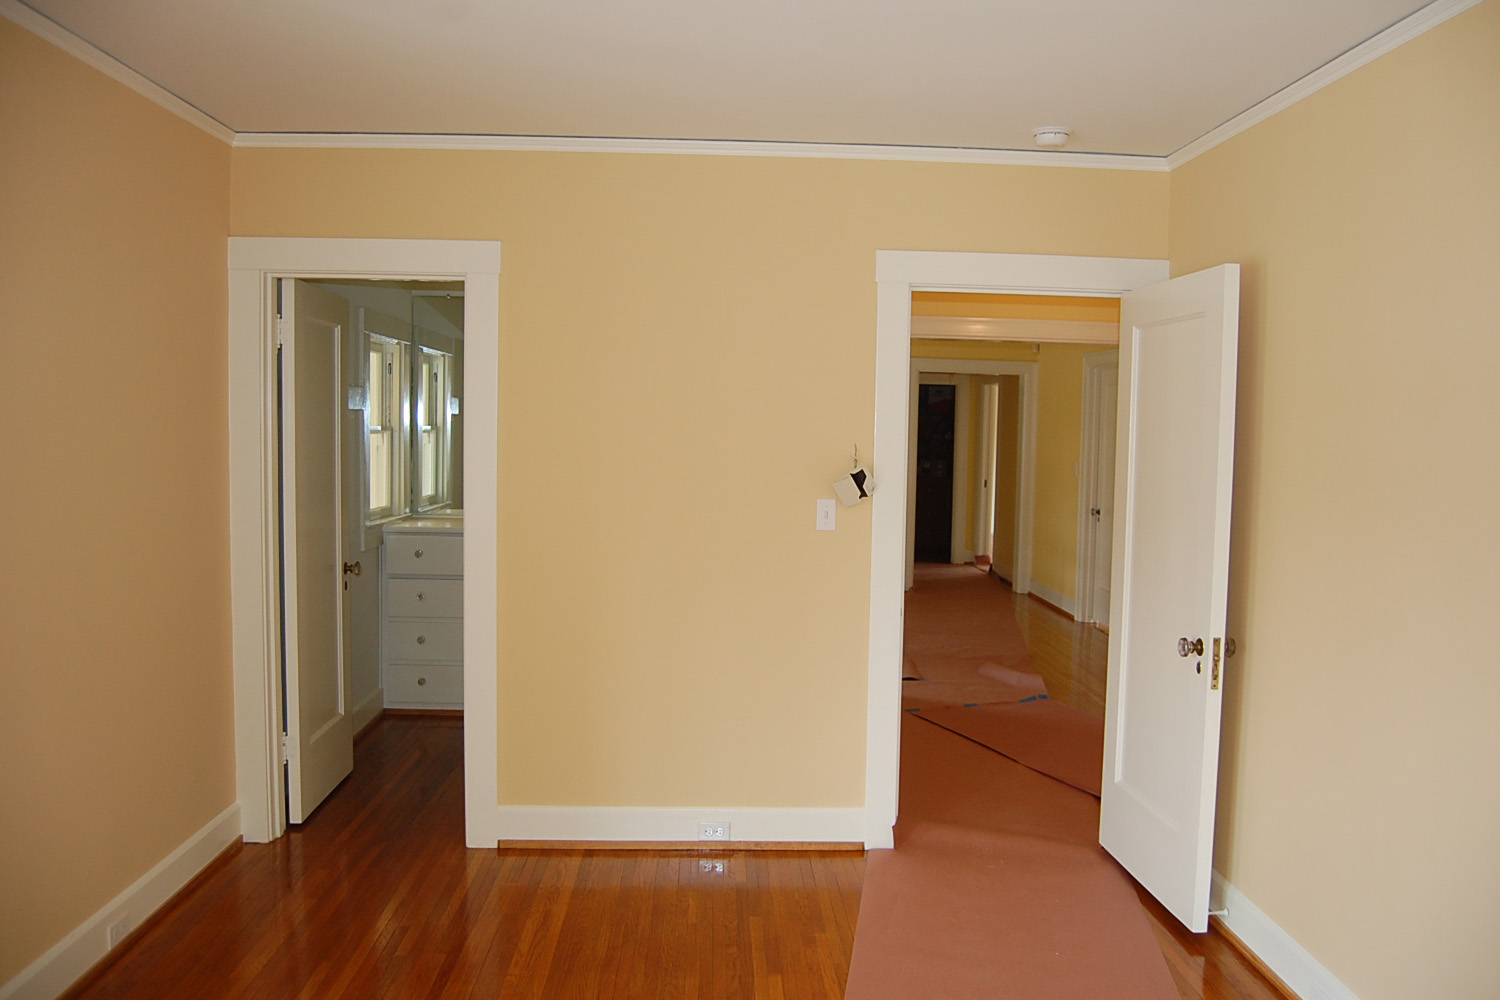 Yellow walls and white ceiling